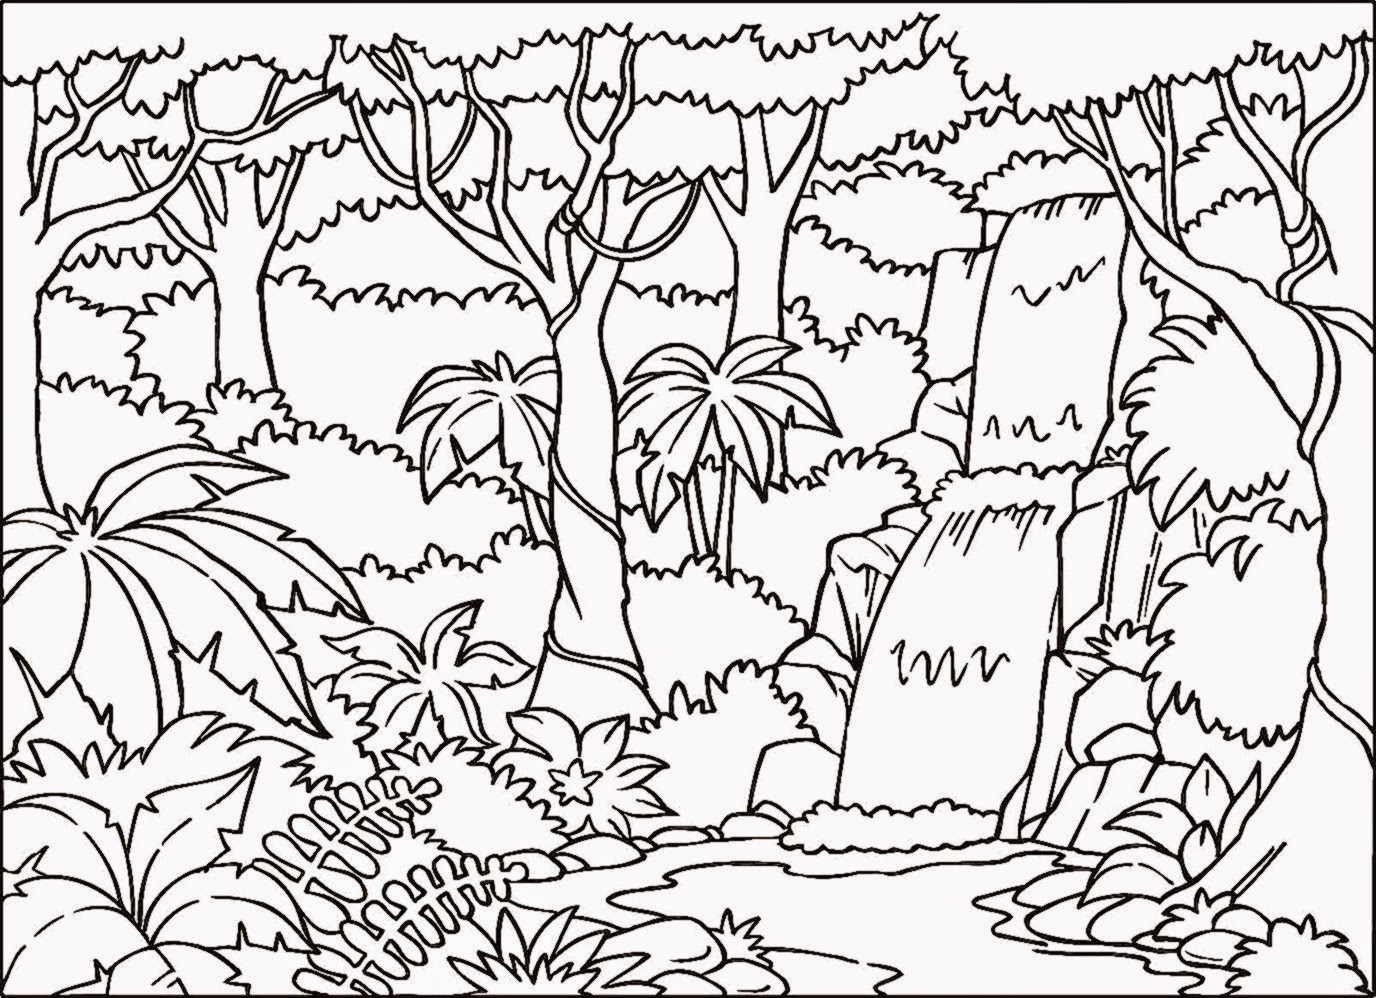 Easy Jungle Drawing at GetDrawings.com | Free for personal use Easy ...